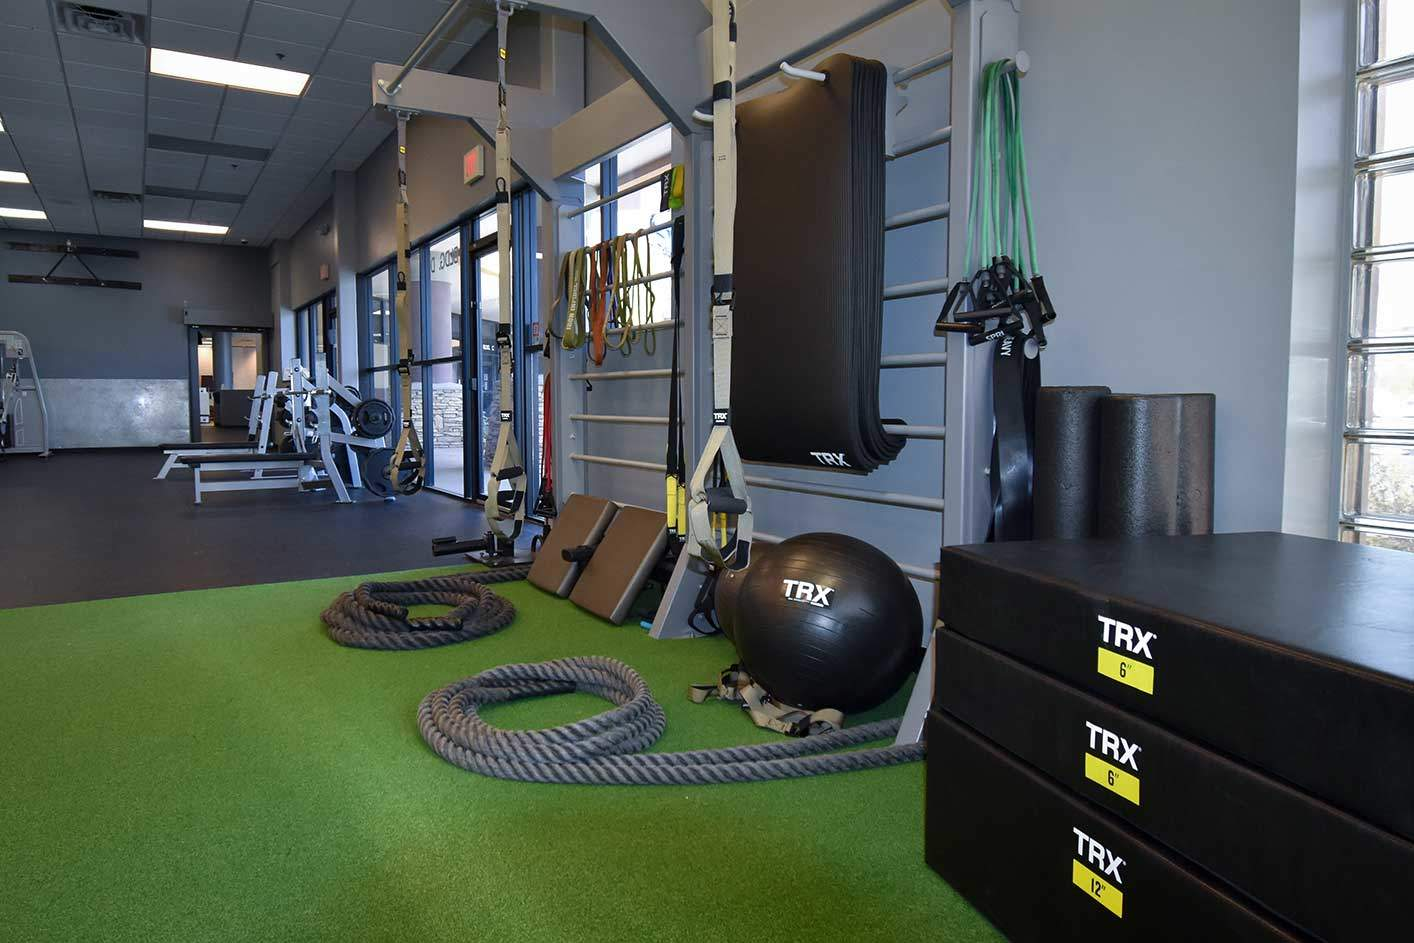 personal training area ropes & trx system